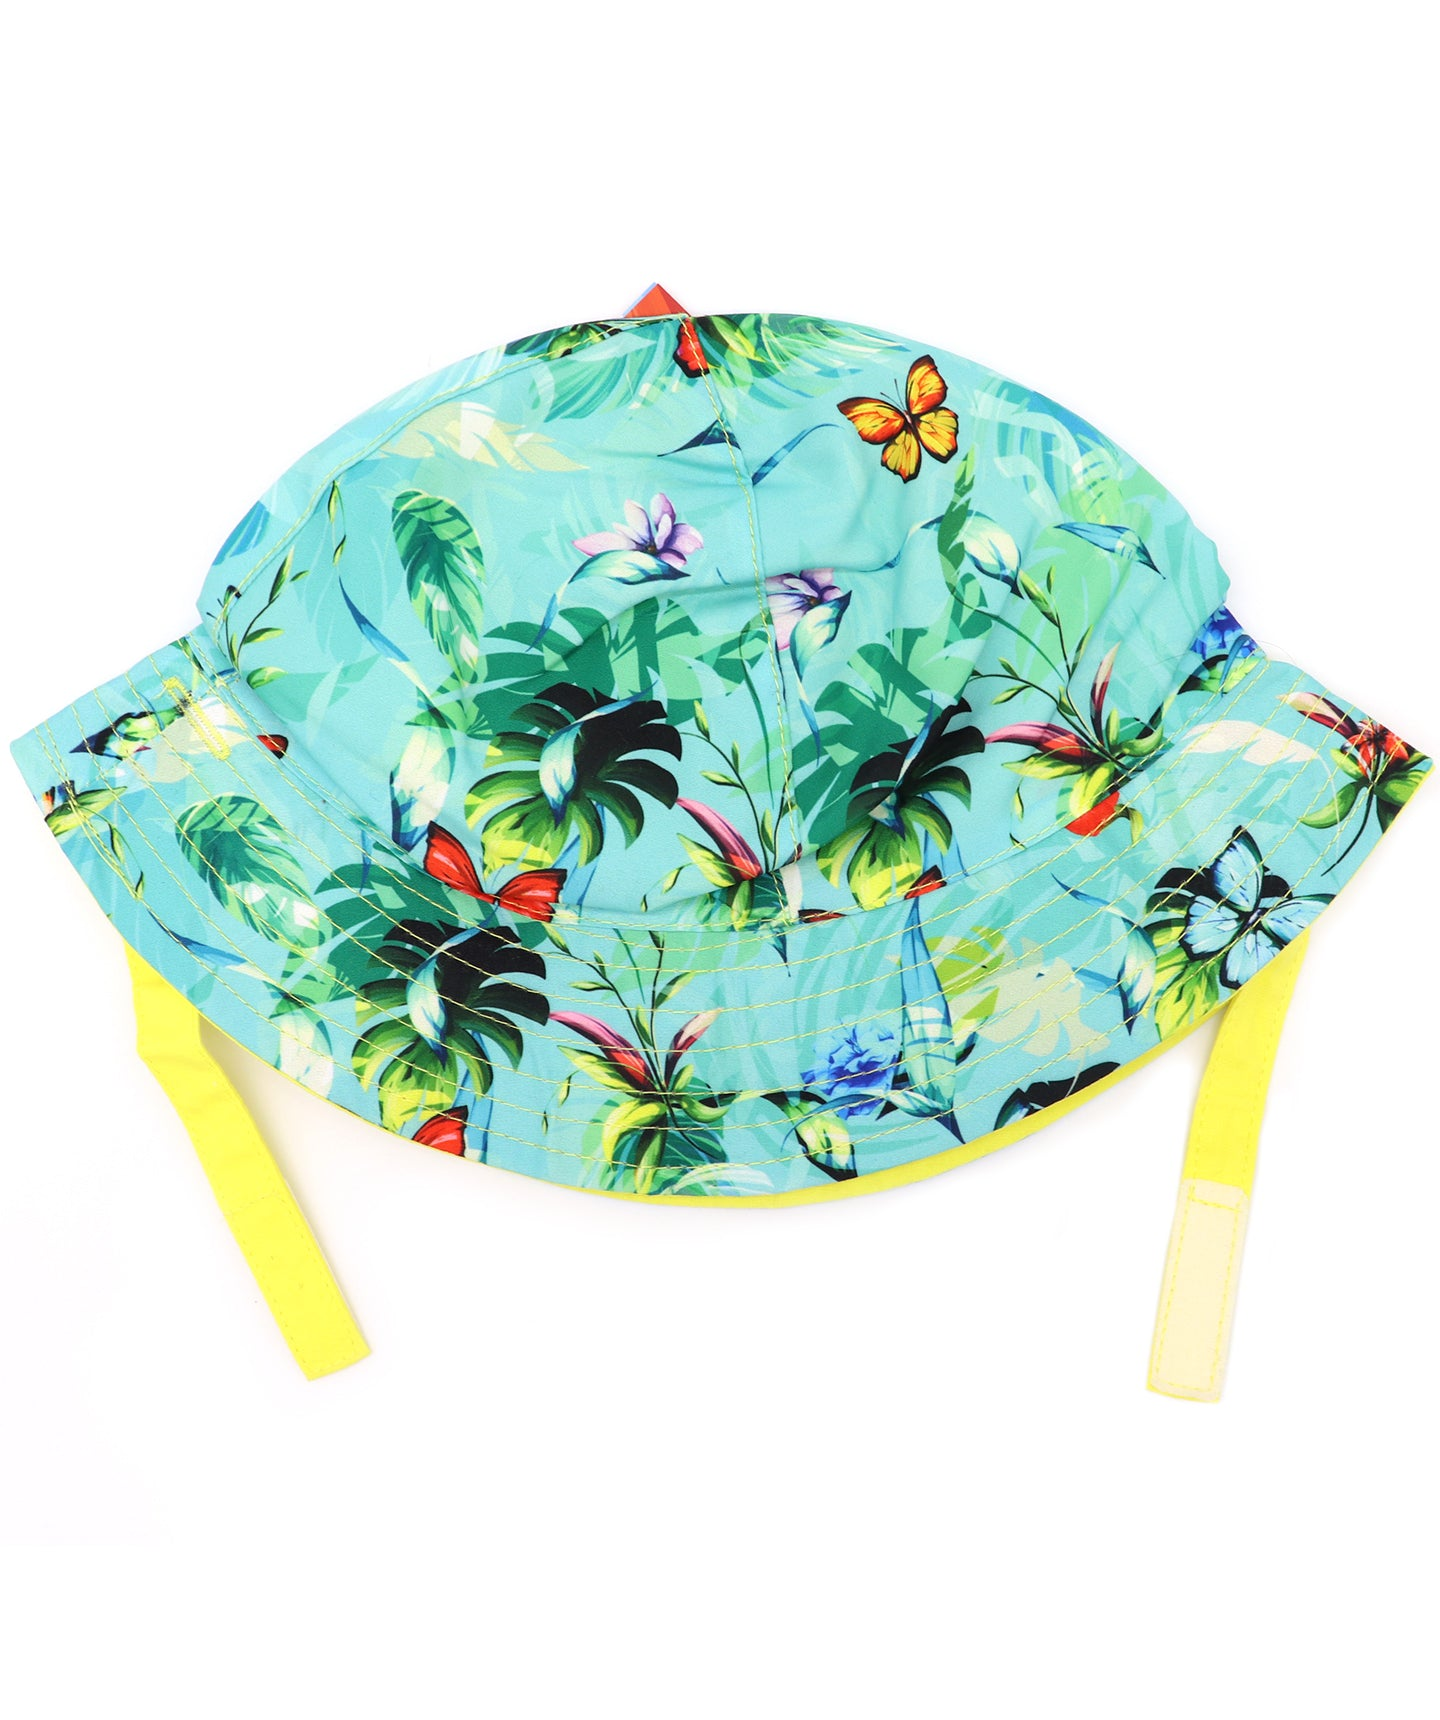 Butterfly kids round hat, bucket hat with built in UV protection, UPF 50+ for infants, toddler, and small children. Built in sun protection. Lightweight hat for sunny days, beach, pool, zoo, and playdates. Teal hat features tropical foliage and orange butterflies with yellow straps.